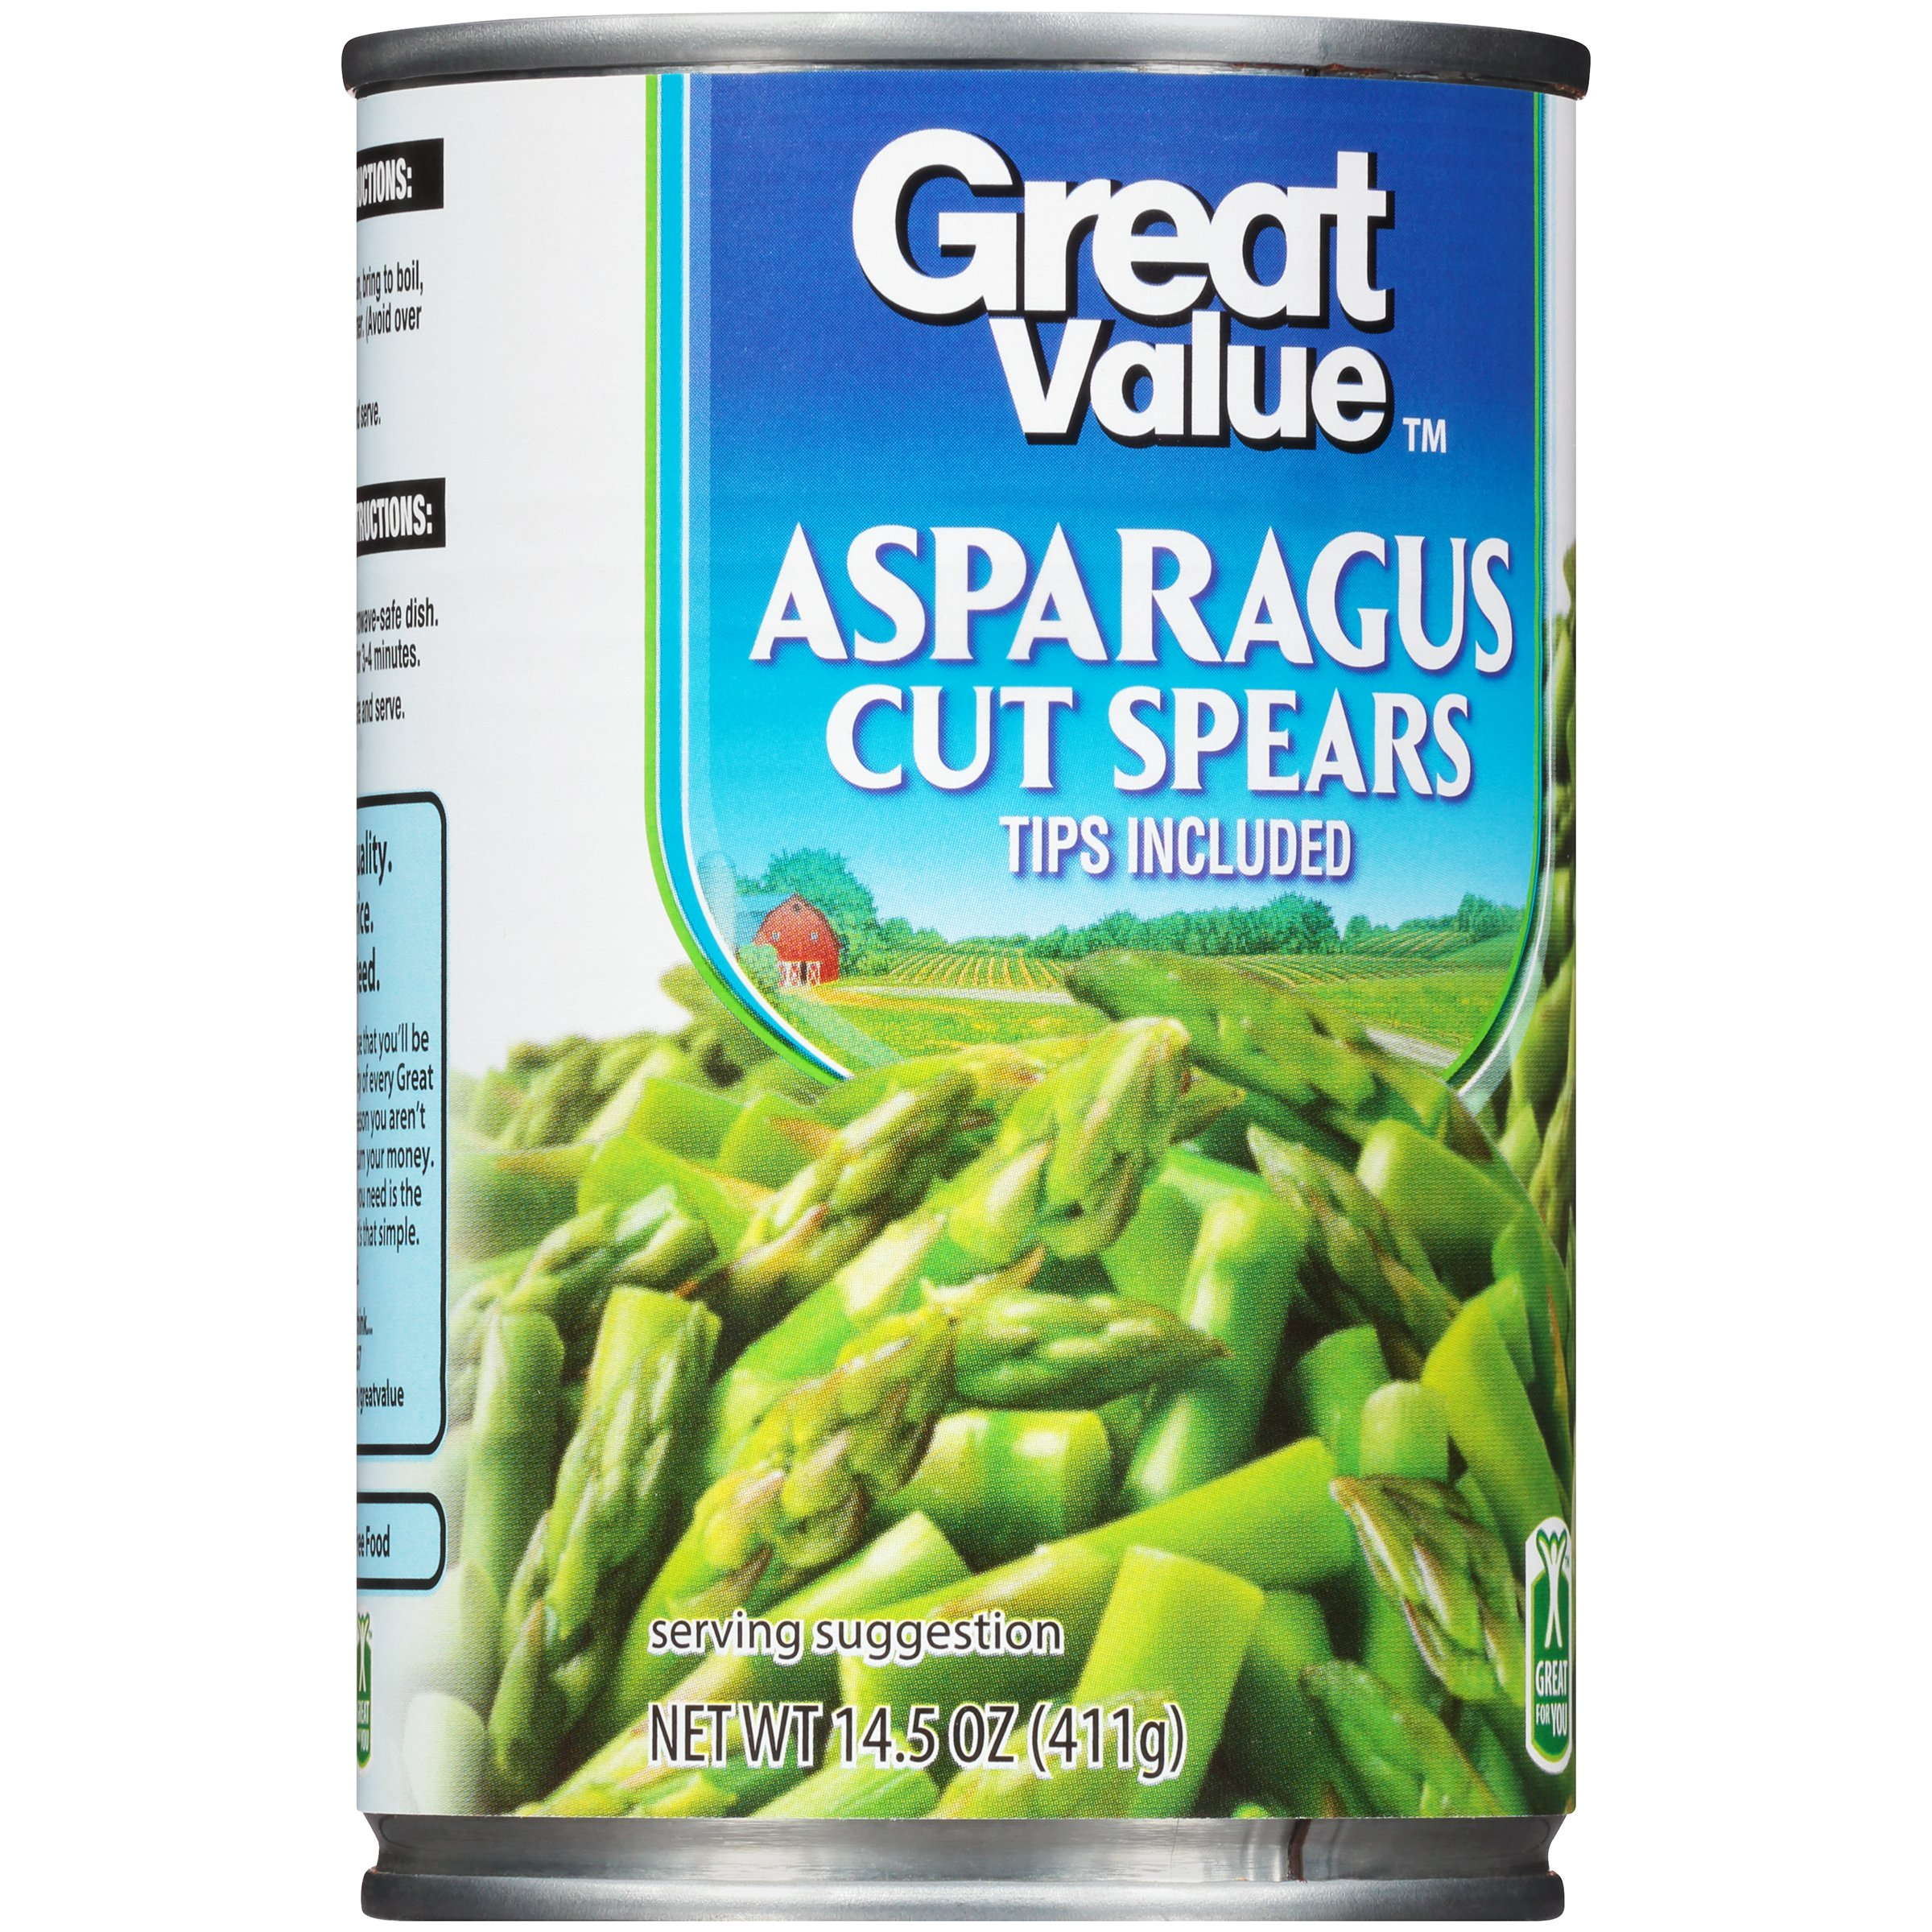 Great Value Cut Asparagus Spears With Tips, 14.5 Oz ...